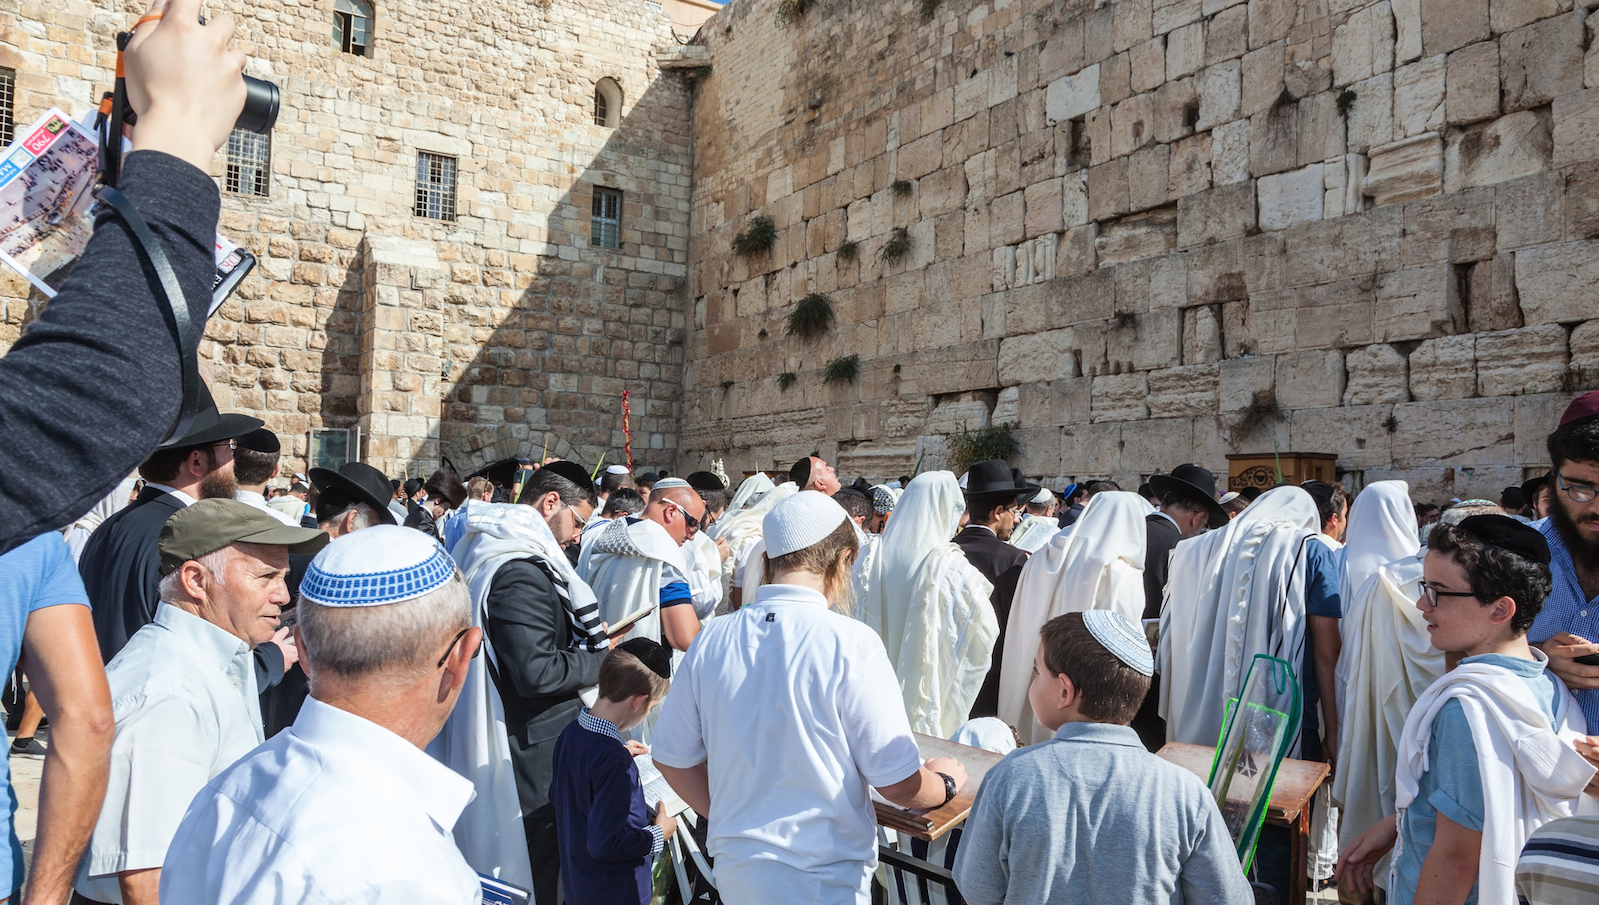 jewish festivals in israel The jewish festivals: a guide to their history and observance [hayyim schauss] on amazoncom free shipping on qualifying offers why is the jewish new year designated on the jewish calendar as the first day of the seventh month.